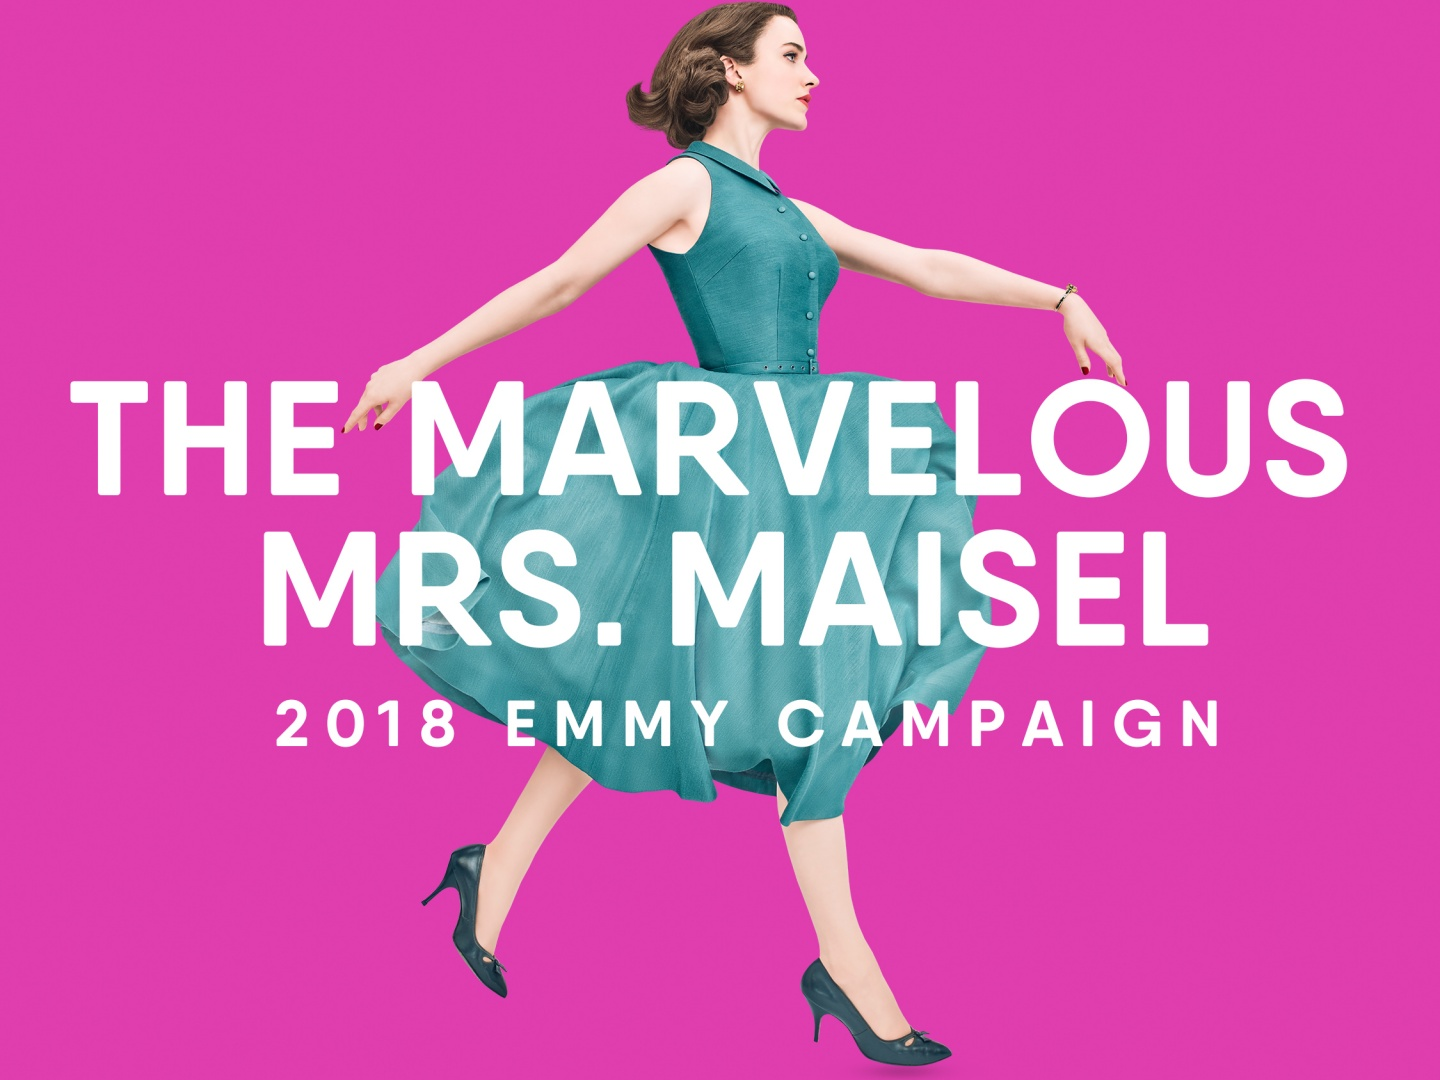 The Marvelous Mrs. Maisel Emmy Campaign Thumbnail